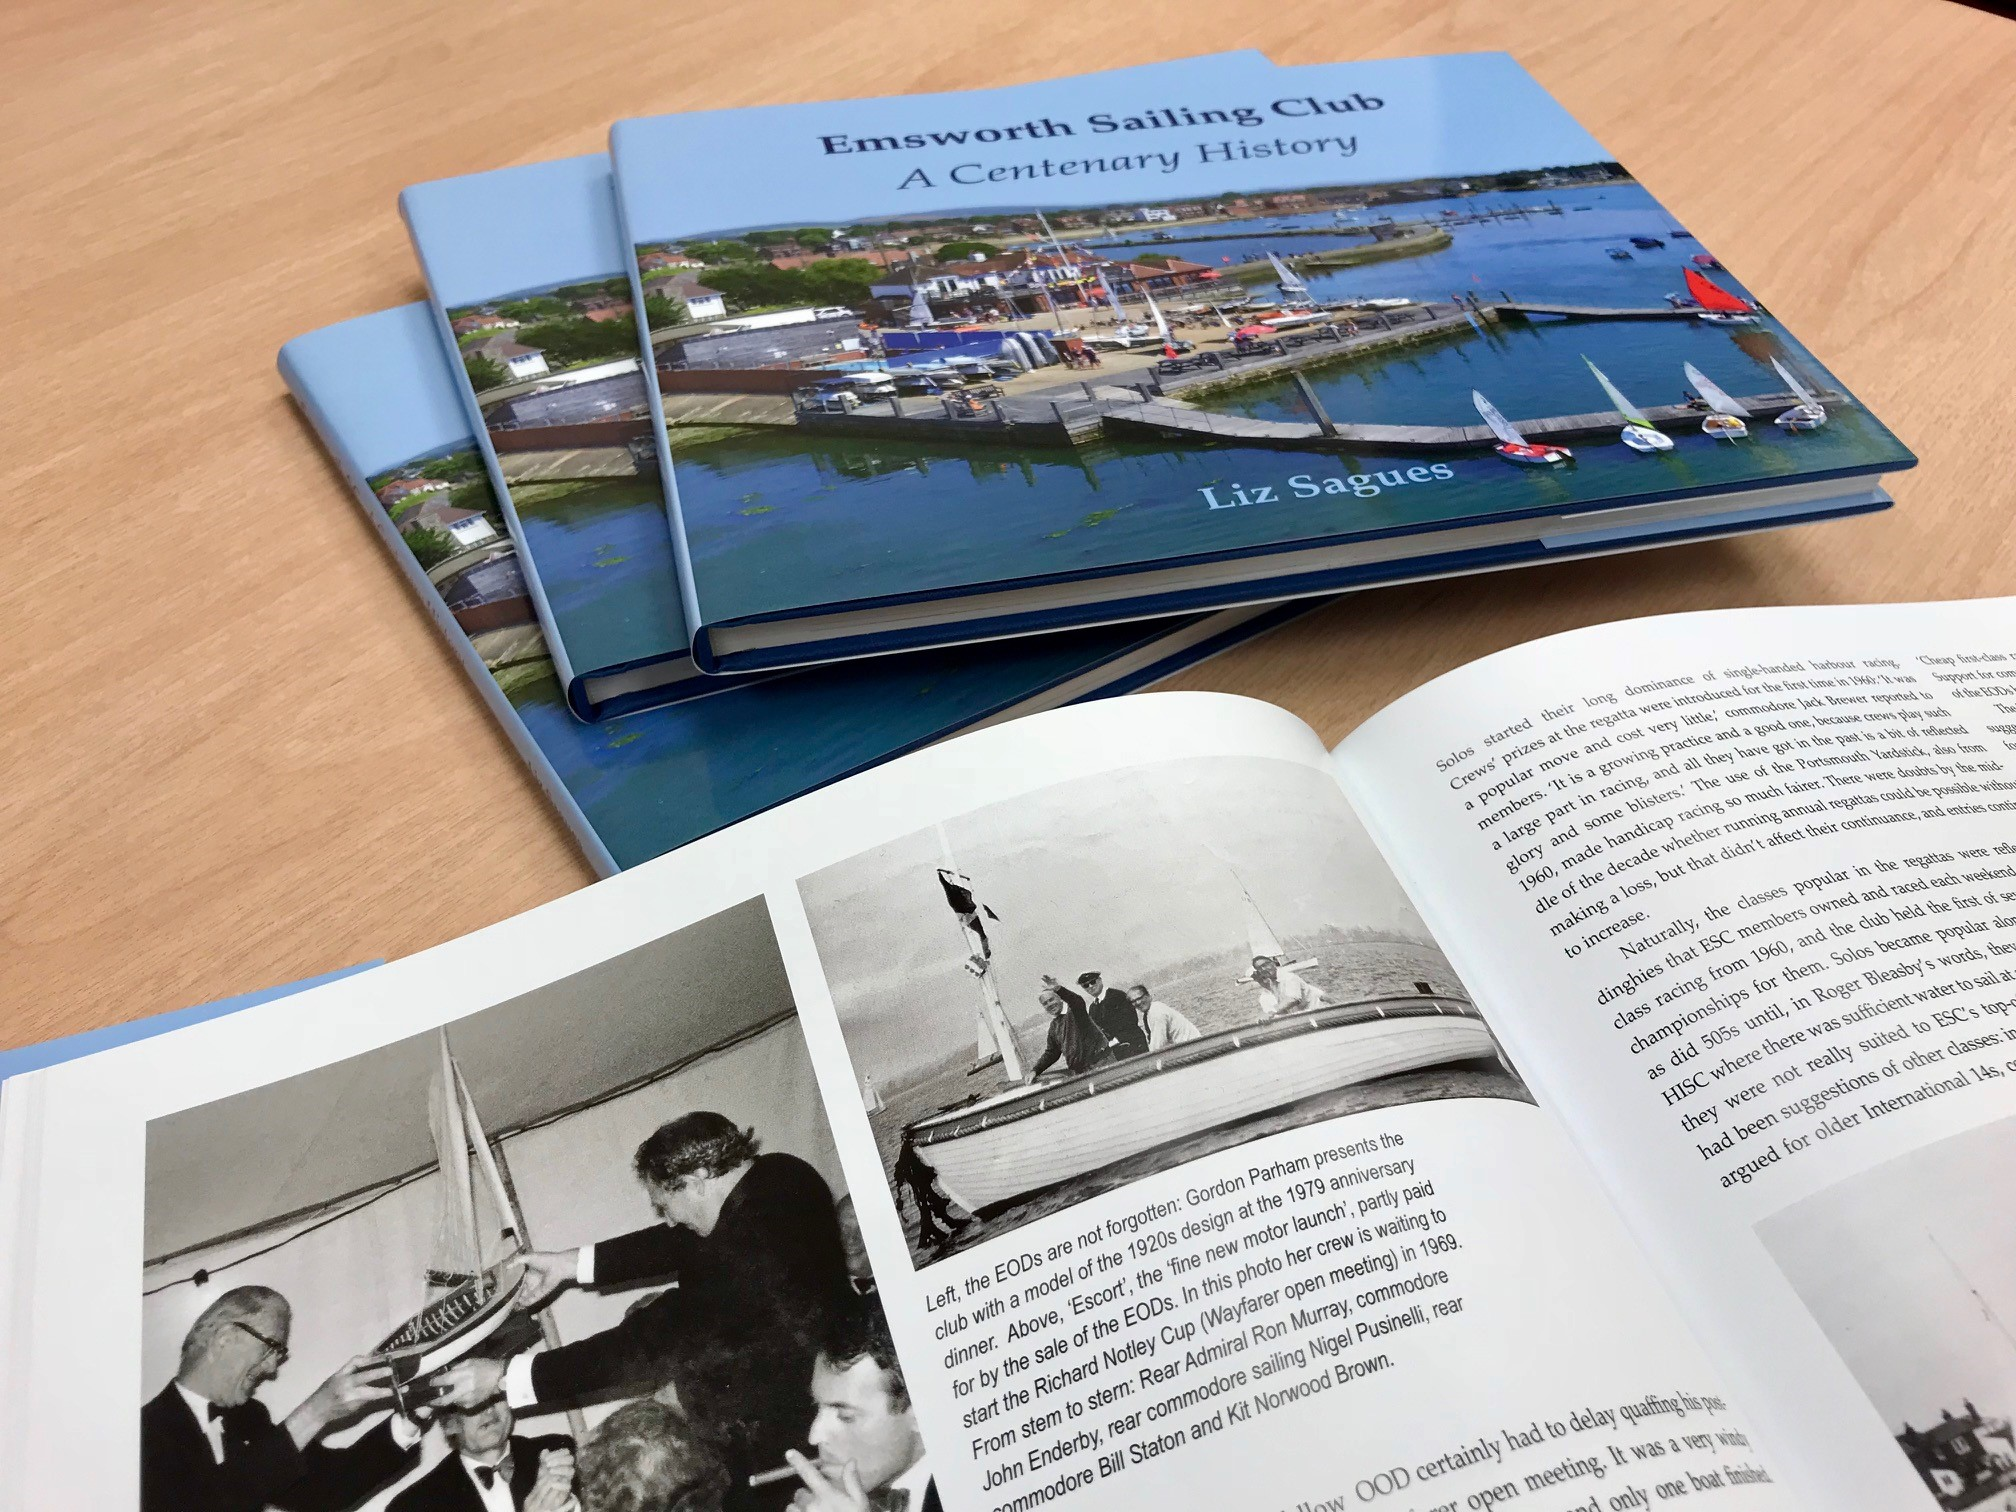 Emsworth Sailing Club - A Centenary History - Selsey Press